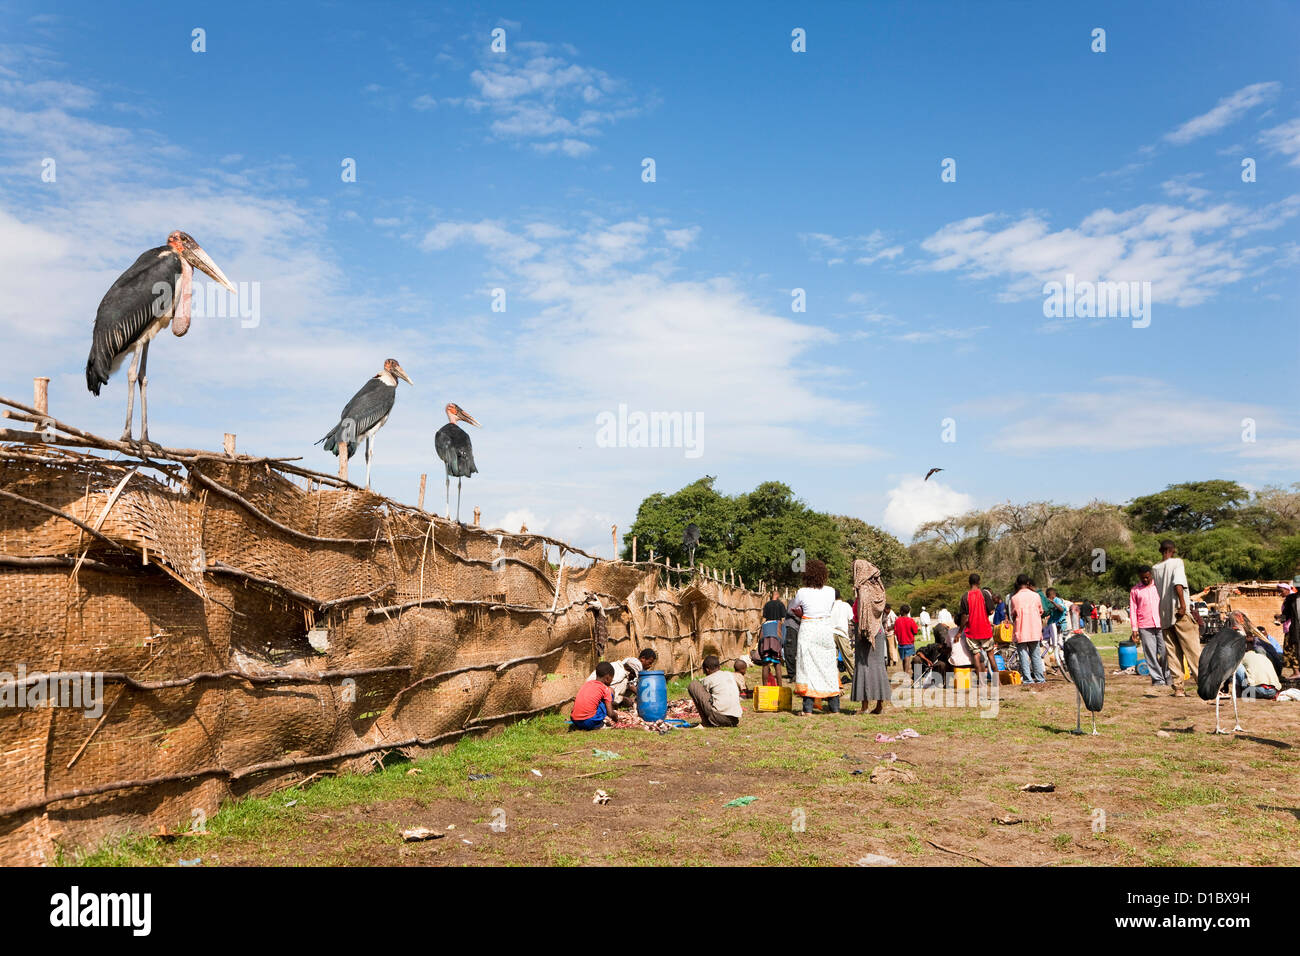 Marabou Storks at the fish market in Awasa, are waiting for refuse and bycatch. Africa, Ethiopia - Stock Image